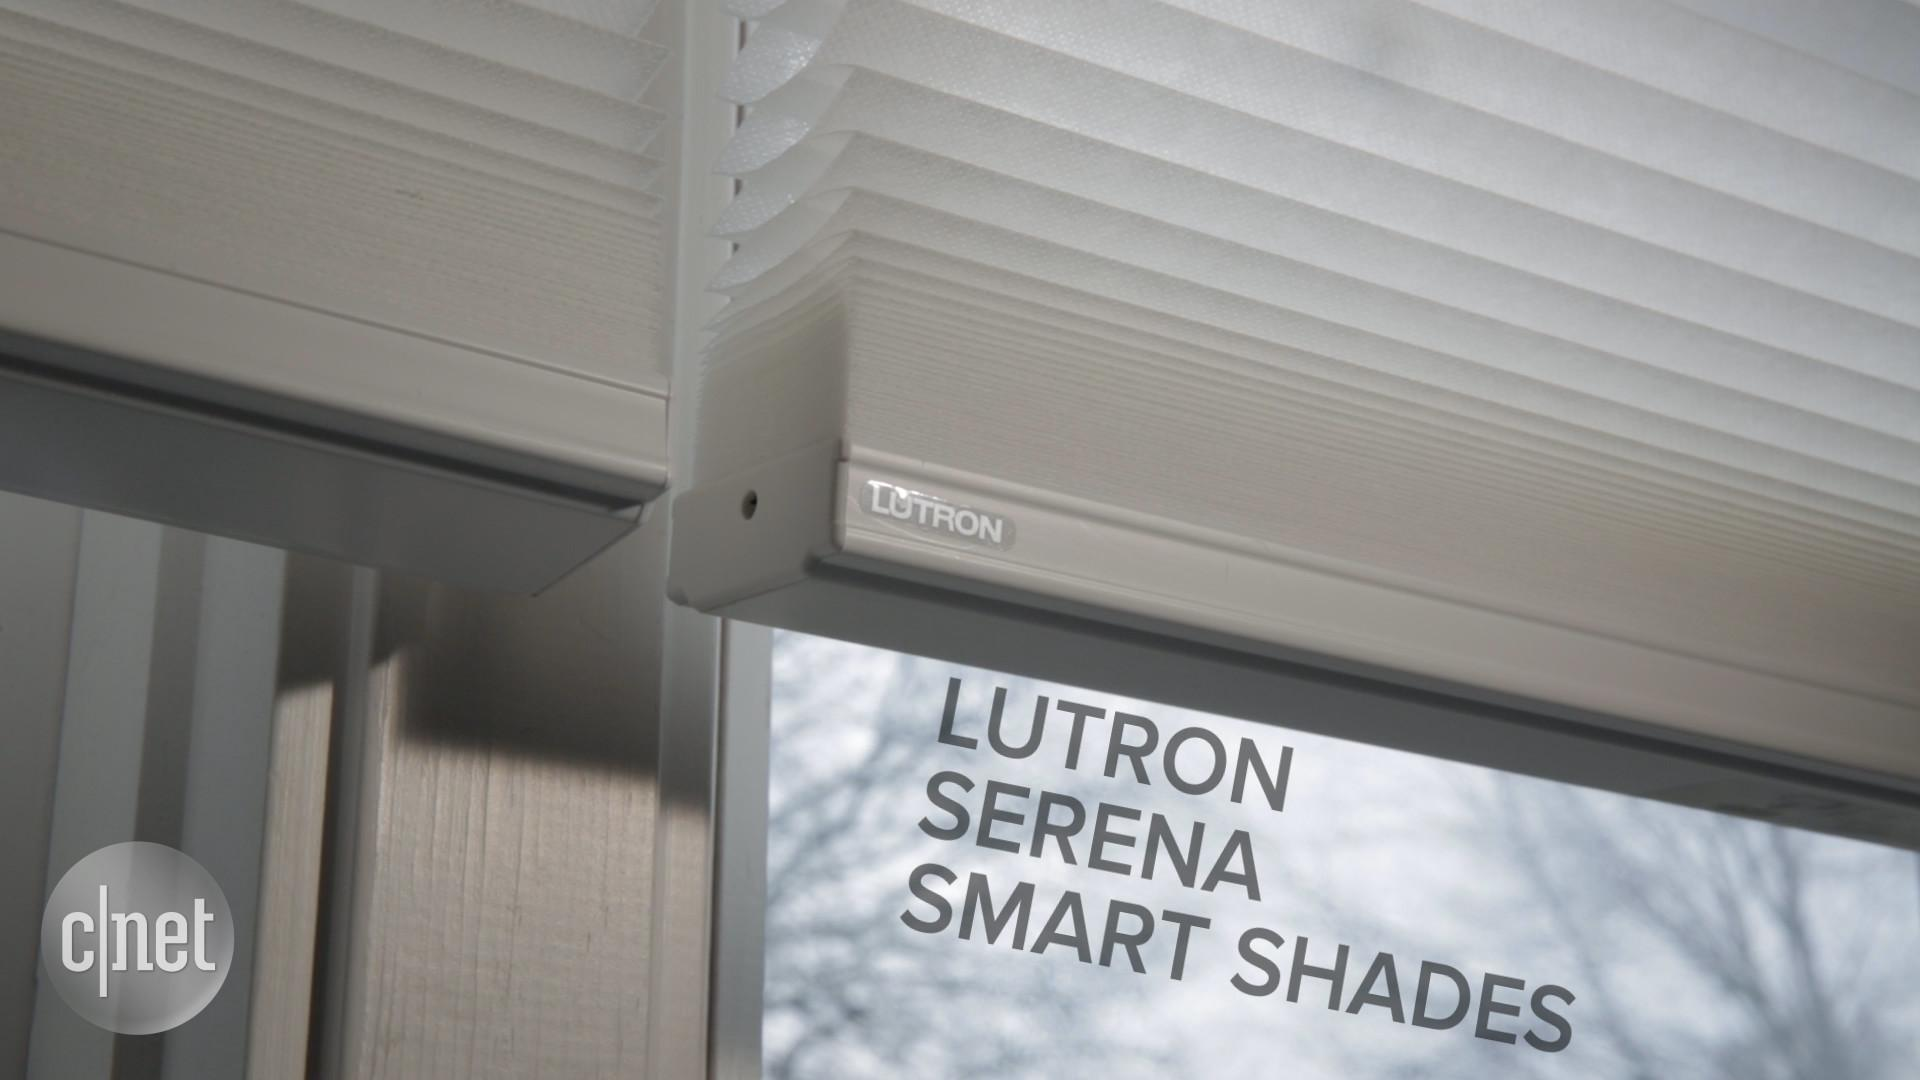 Throwing Shade Cnet Smart Home Video